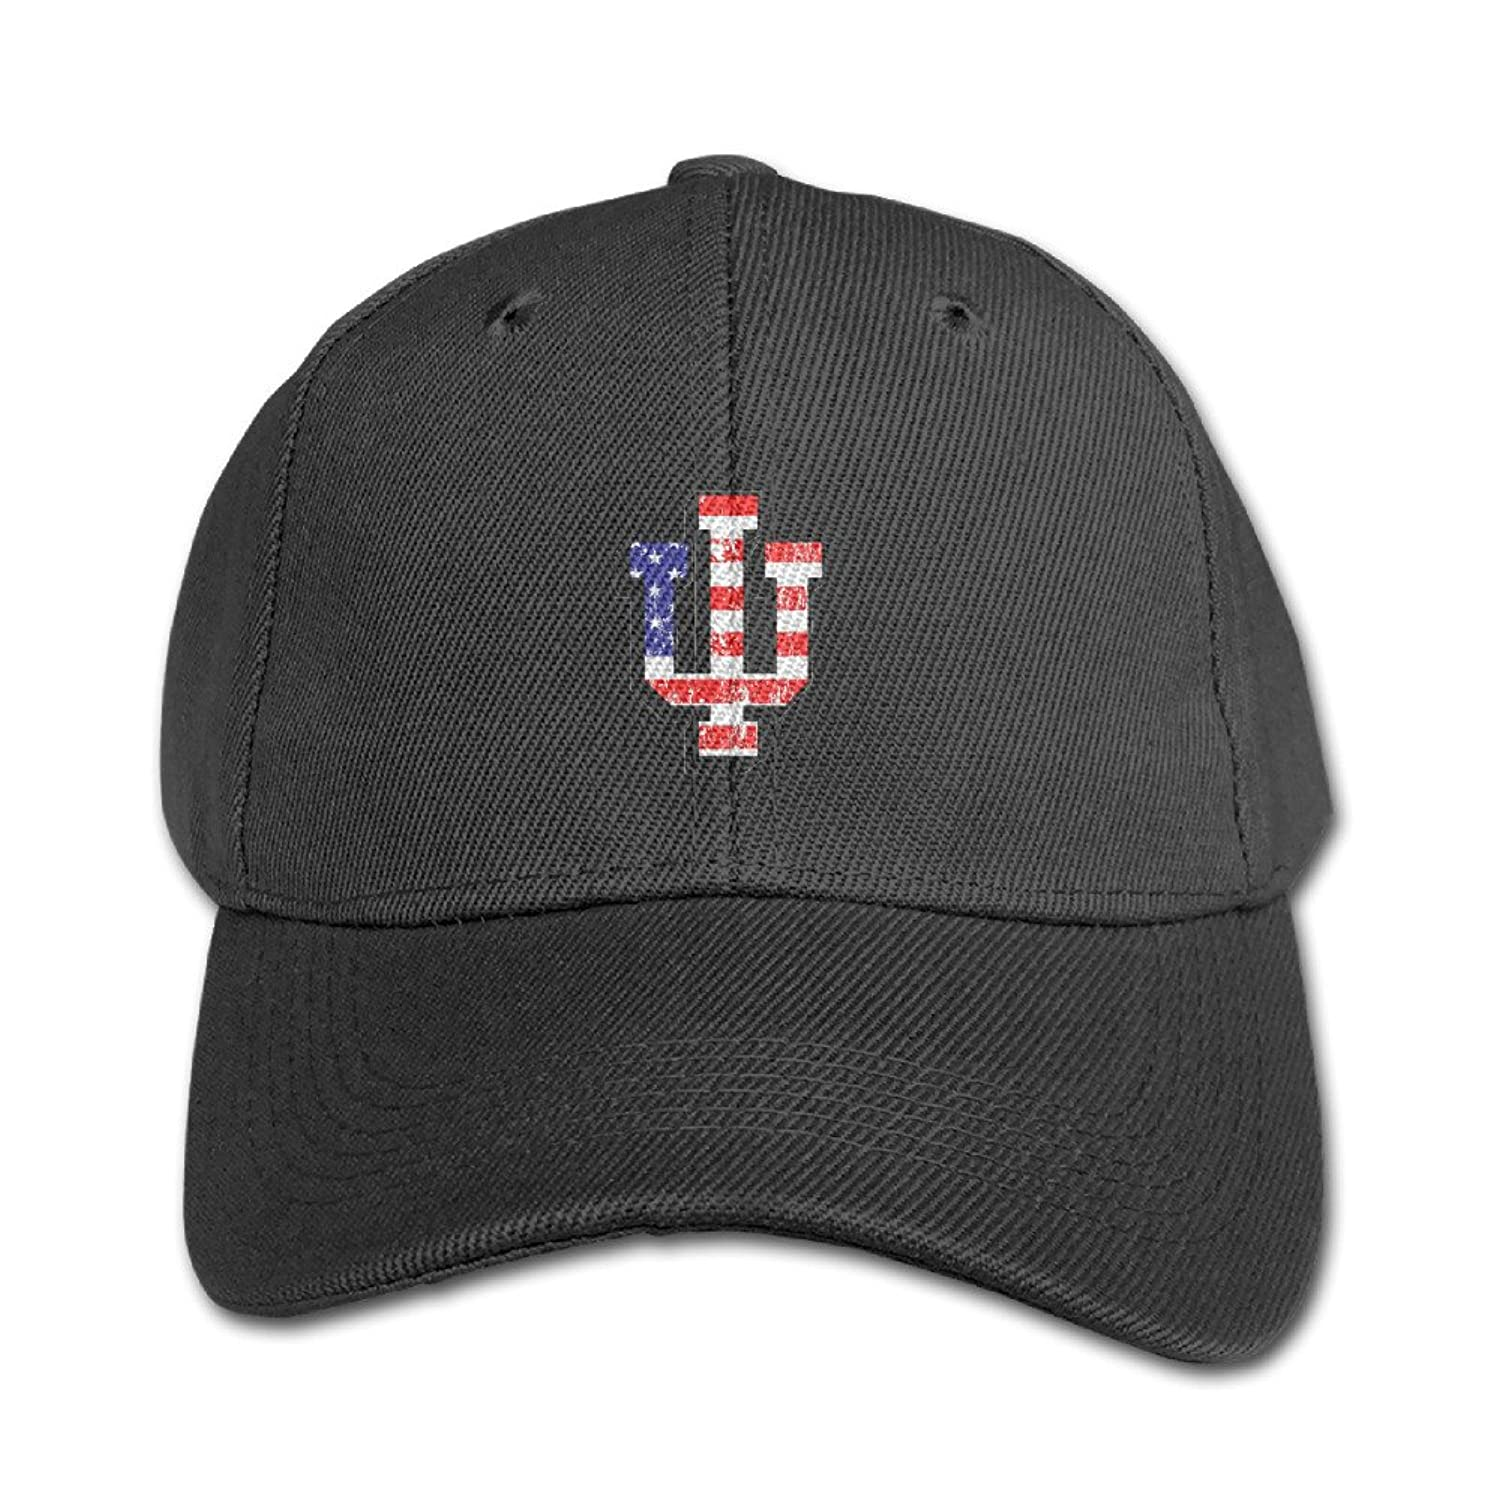 KIDDOS Little Boys' And Girls' University Indiana Bloomington Baseball Cap Sun Hat - Adjustable Hat Ash